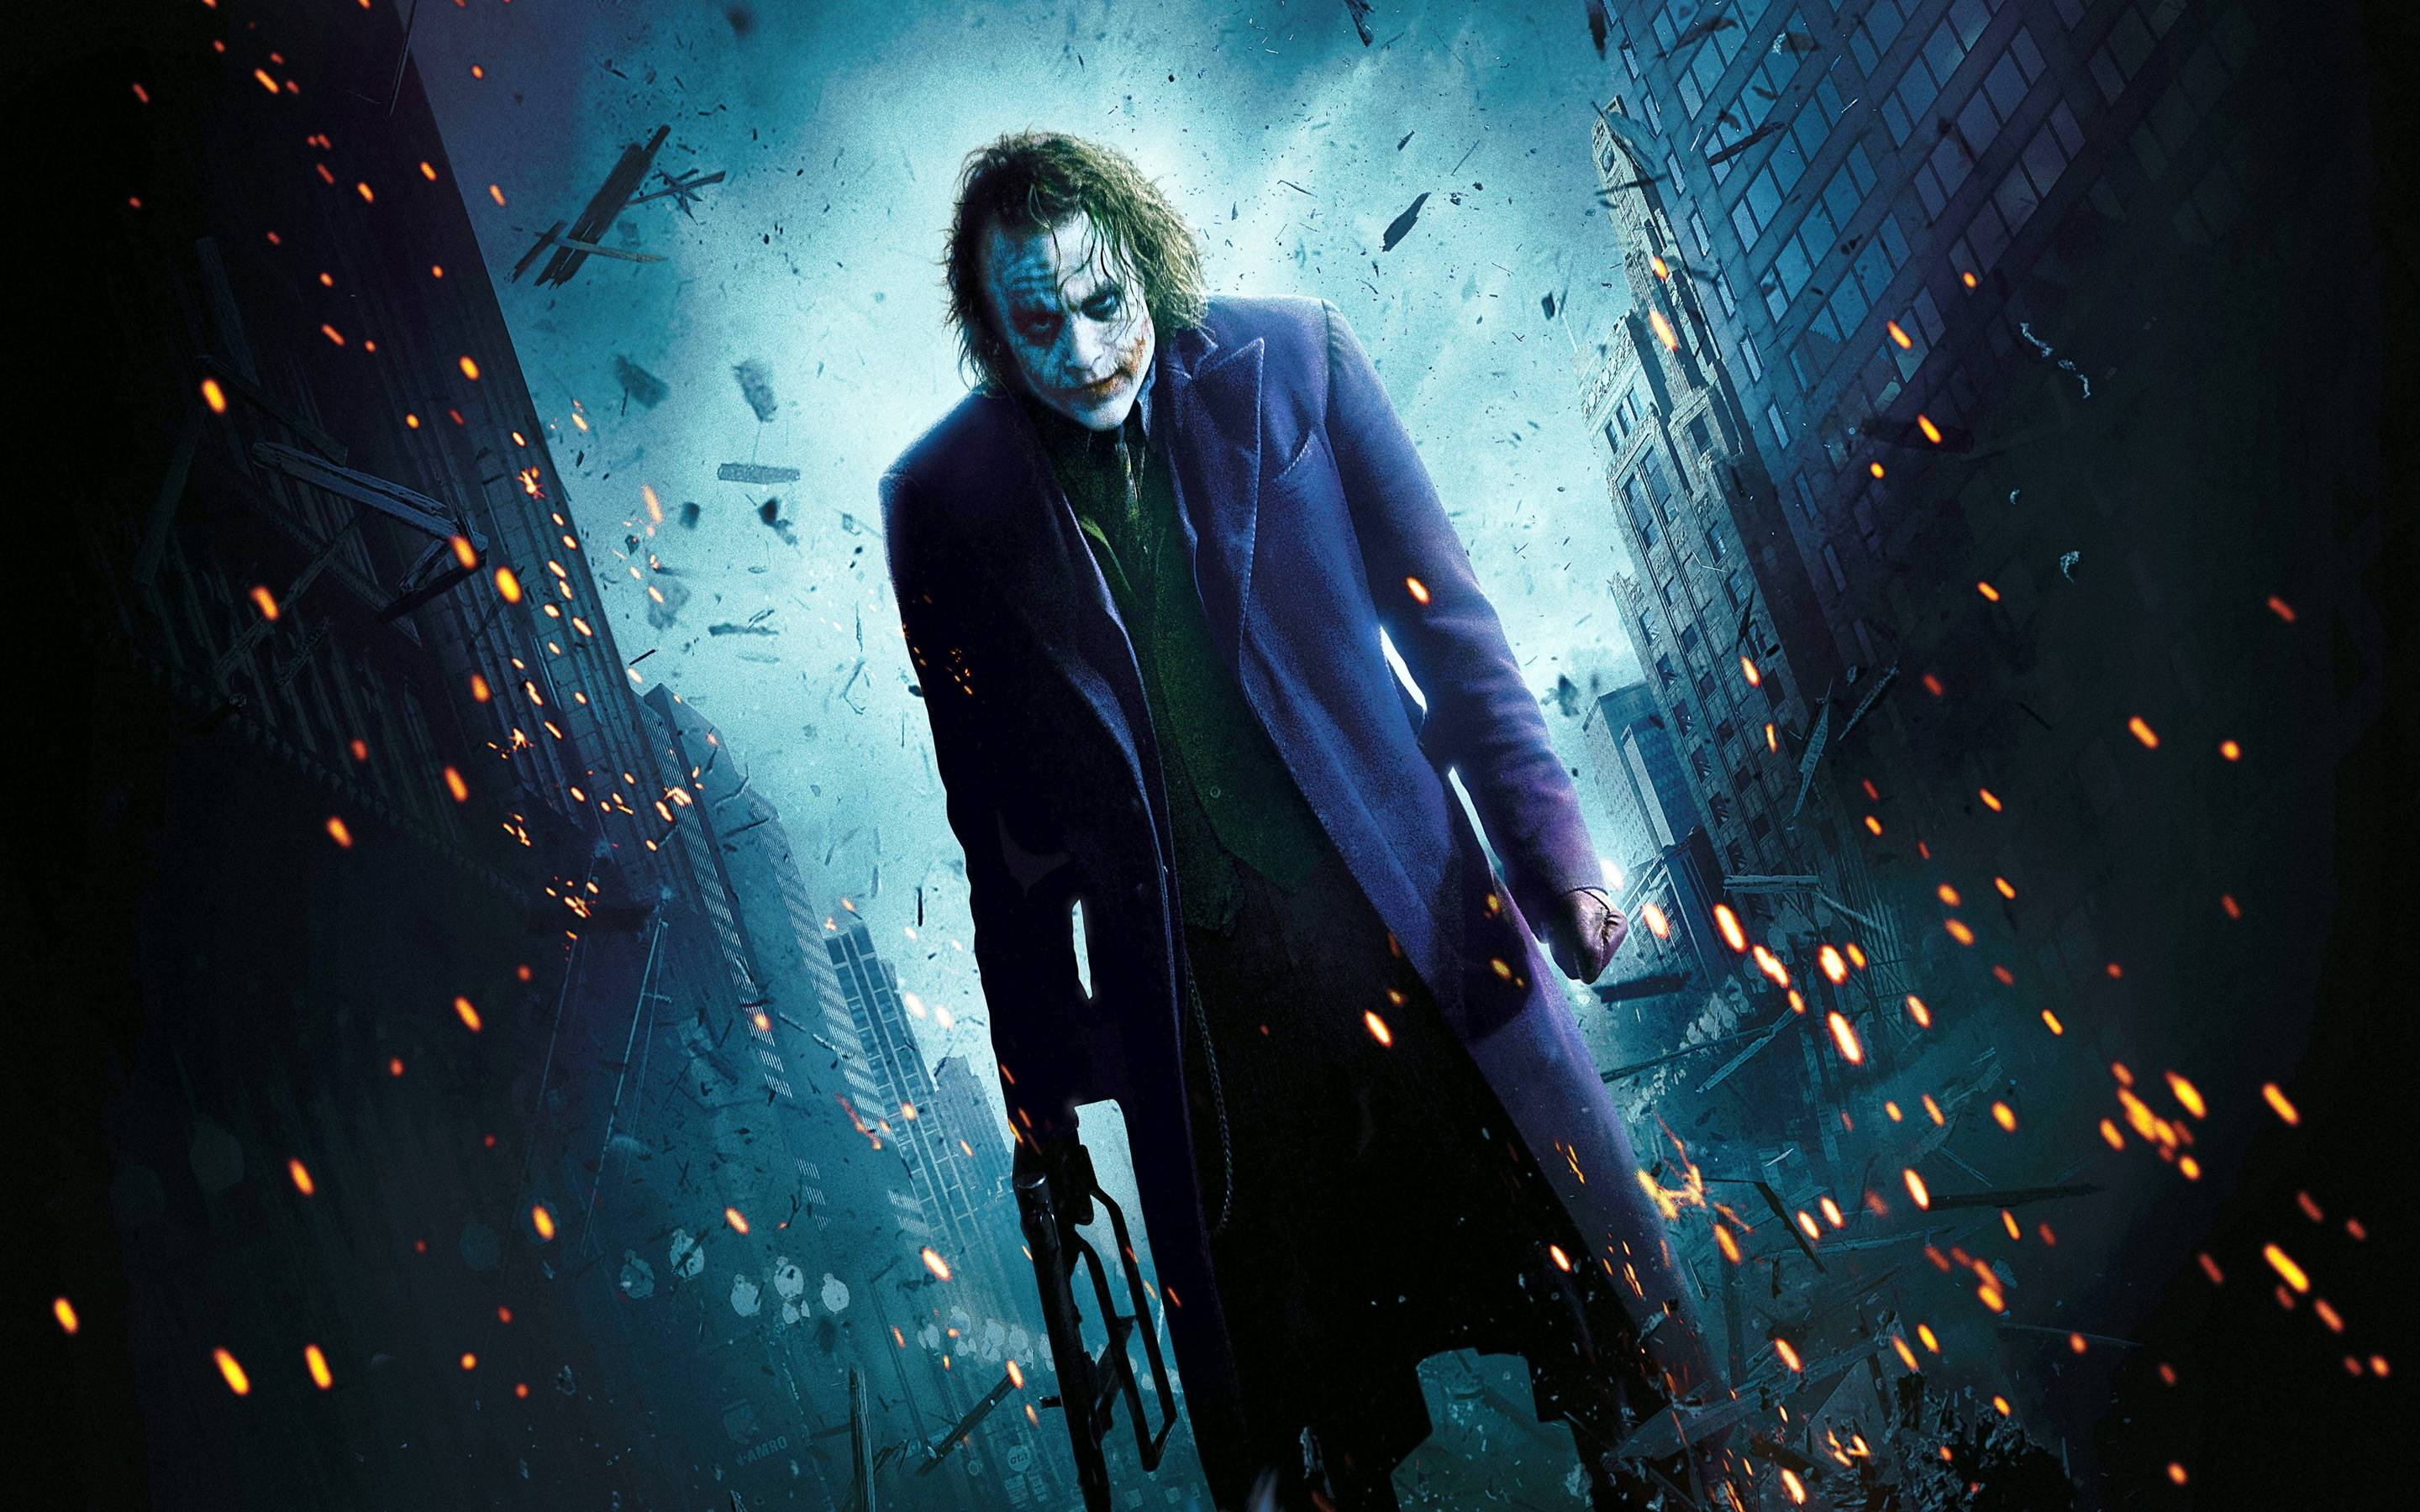 Batman Joker Wallpapers - Full HD wallpaper search